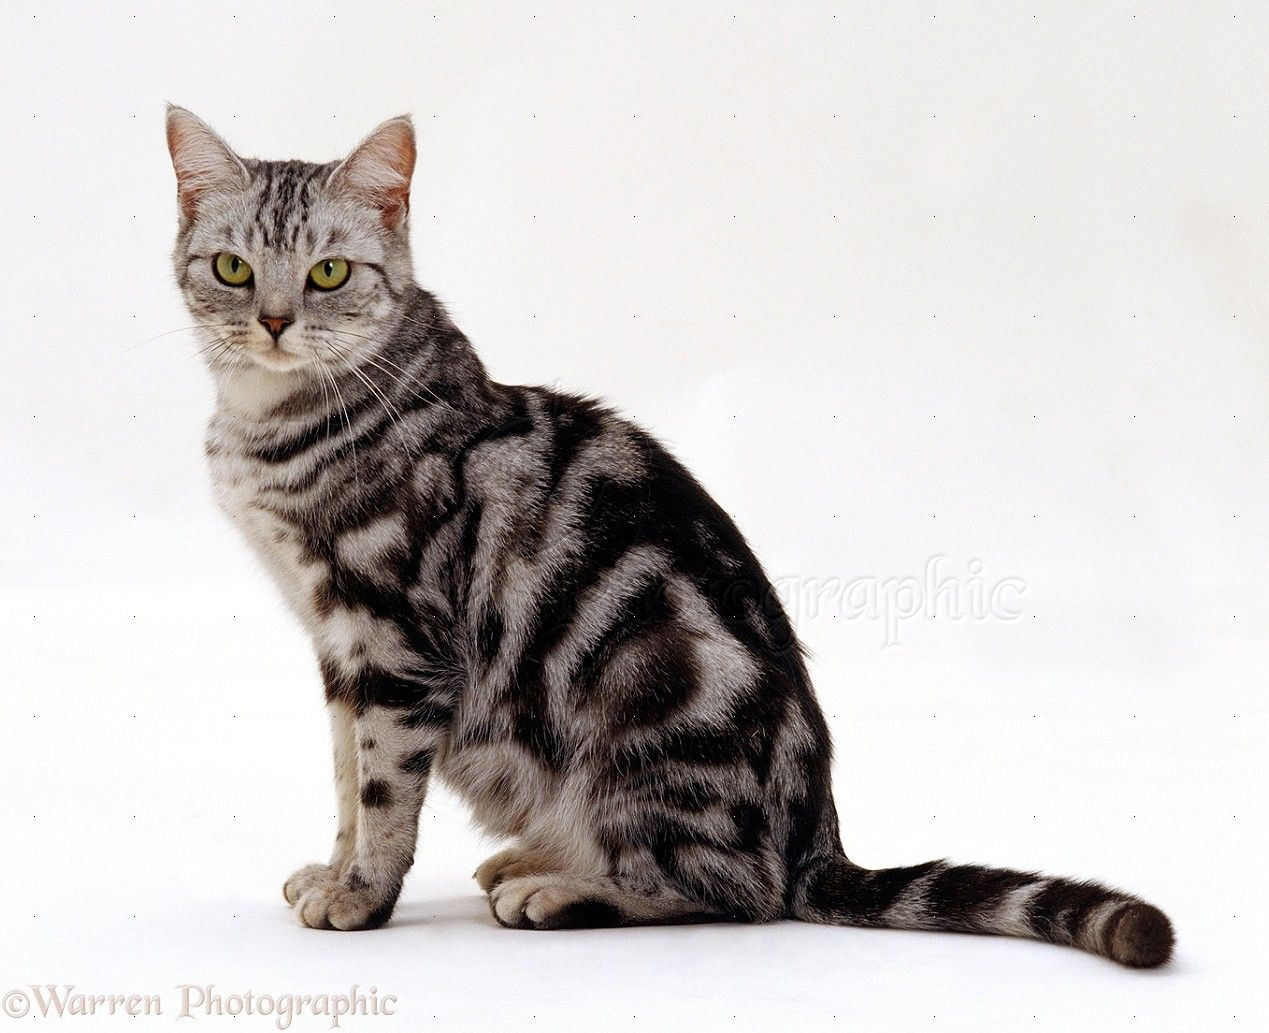 American Shorthair Cat Google Search British Shorthair Silver Tabby American Shorthair Cat Tabby Cat